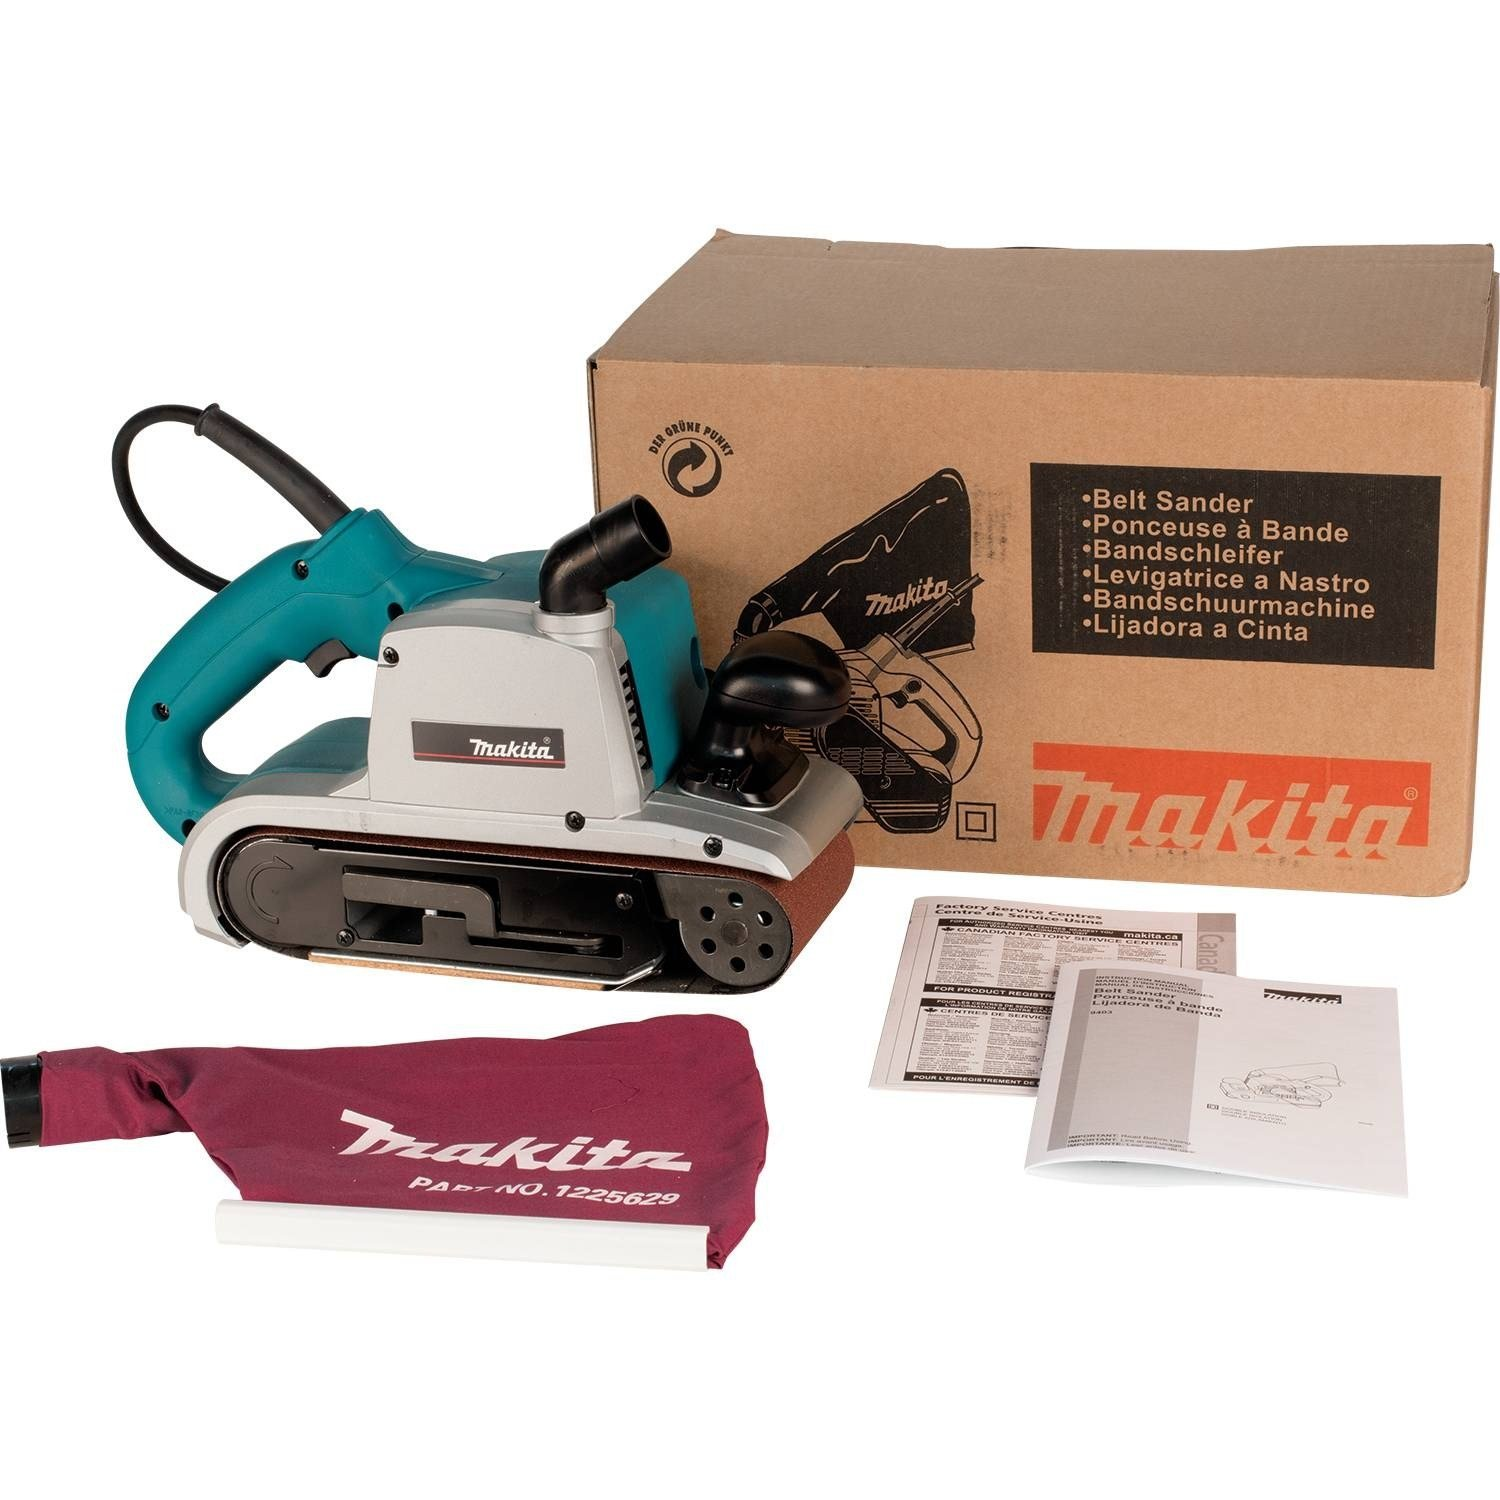 Makita 9403 Belt Sanders product image 6